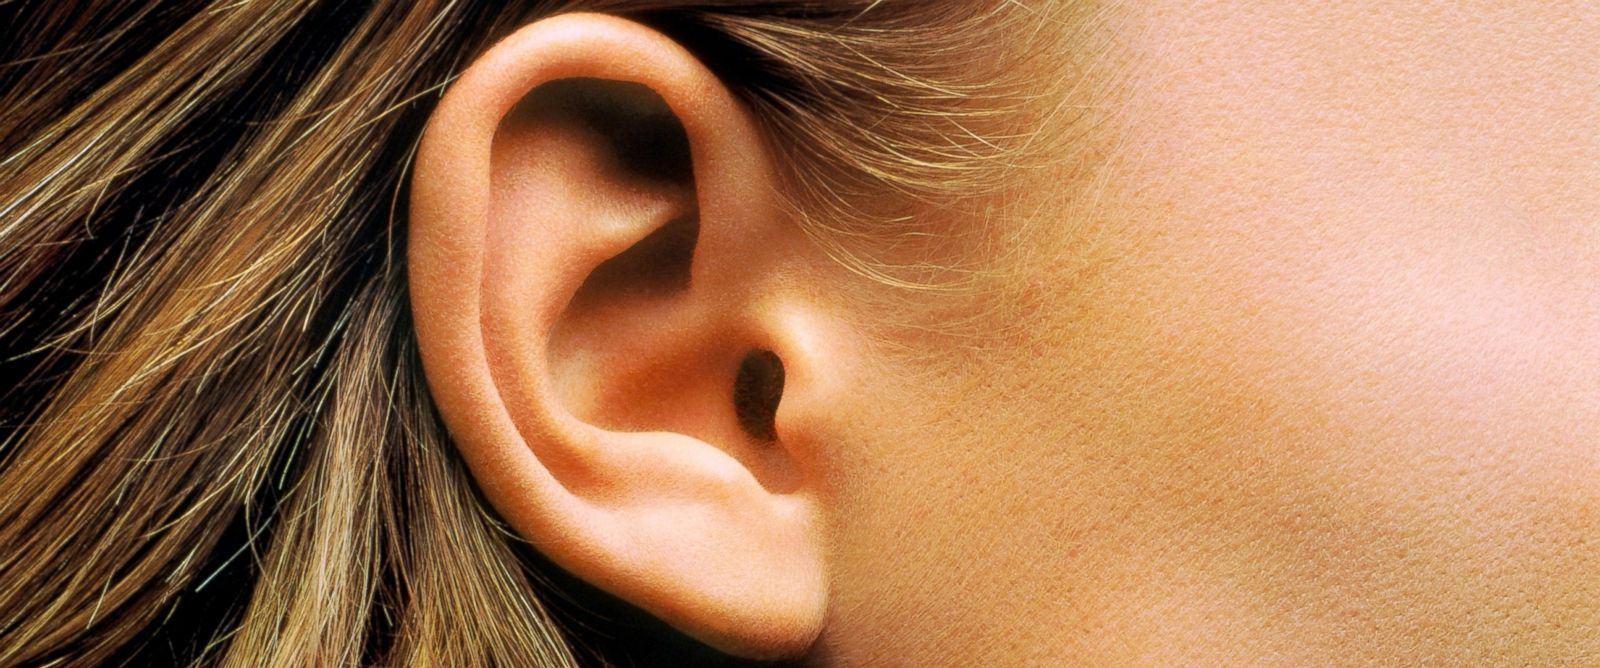 PHOTO: Take years off your ears.